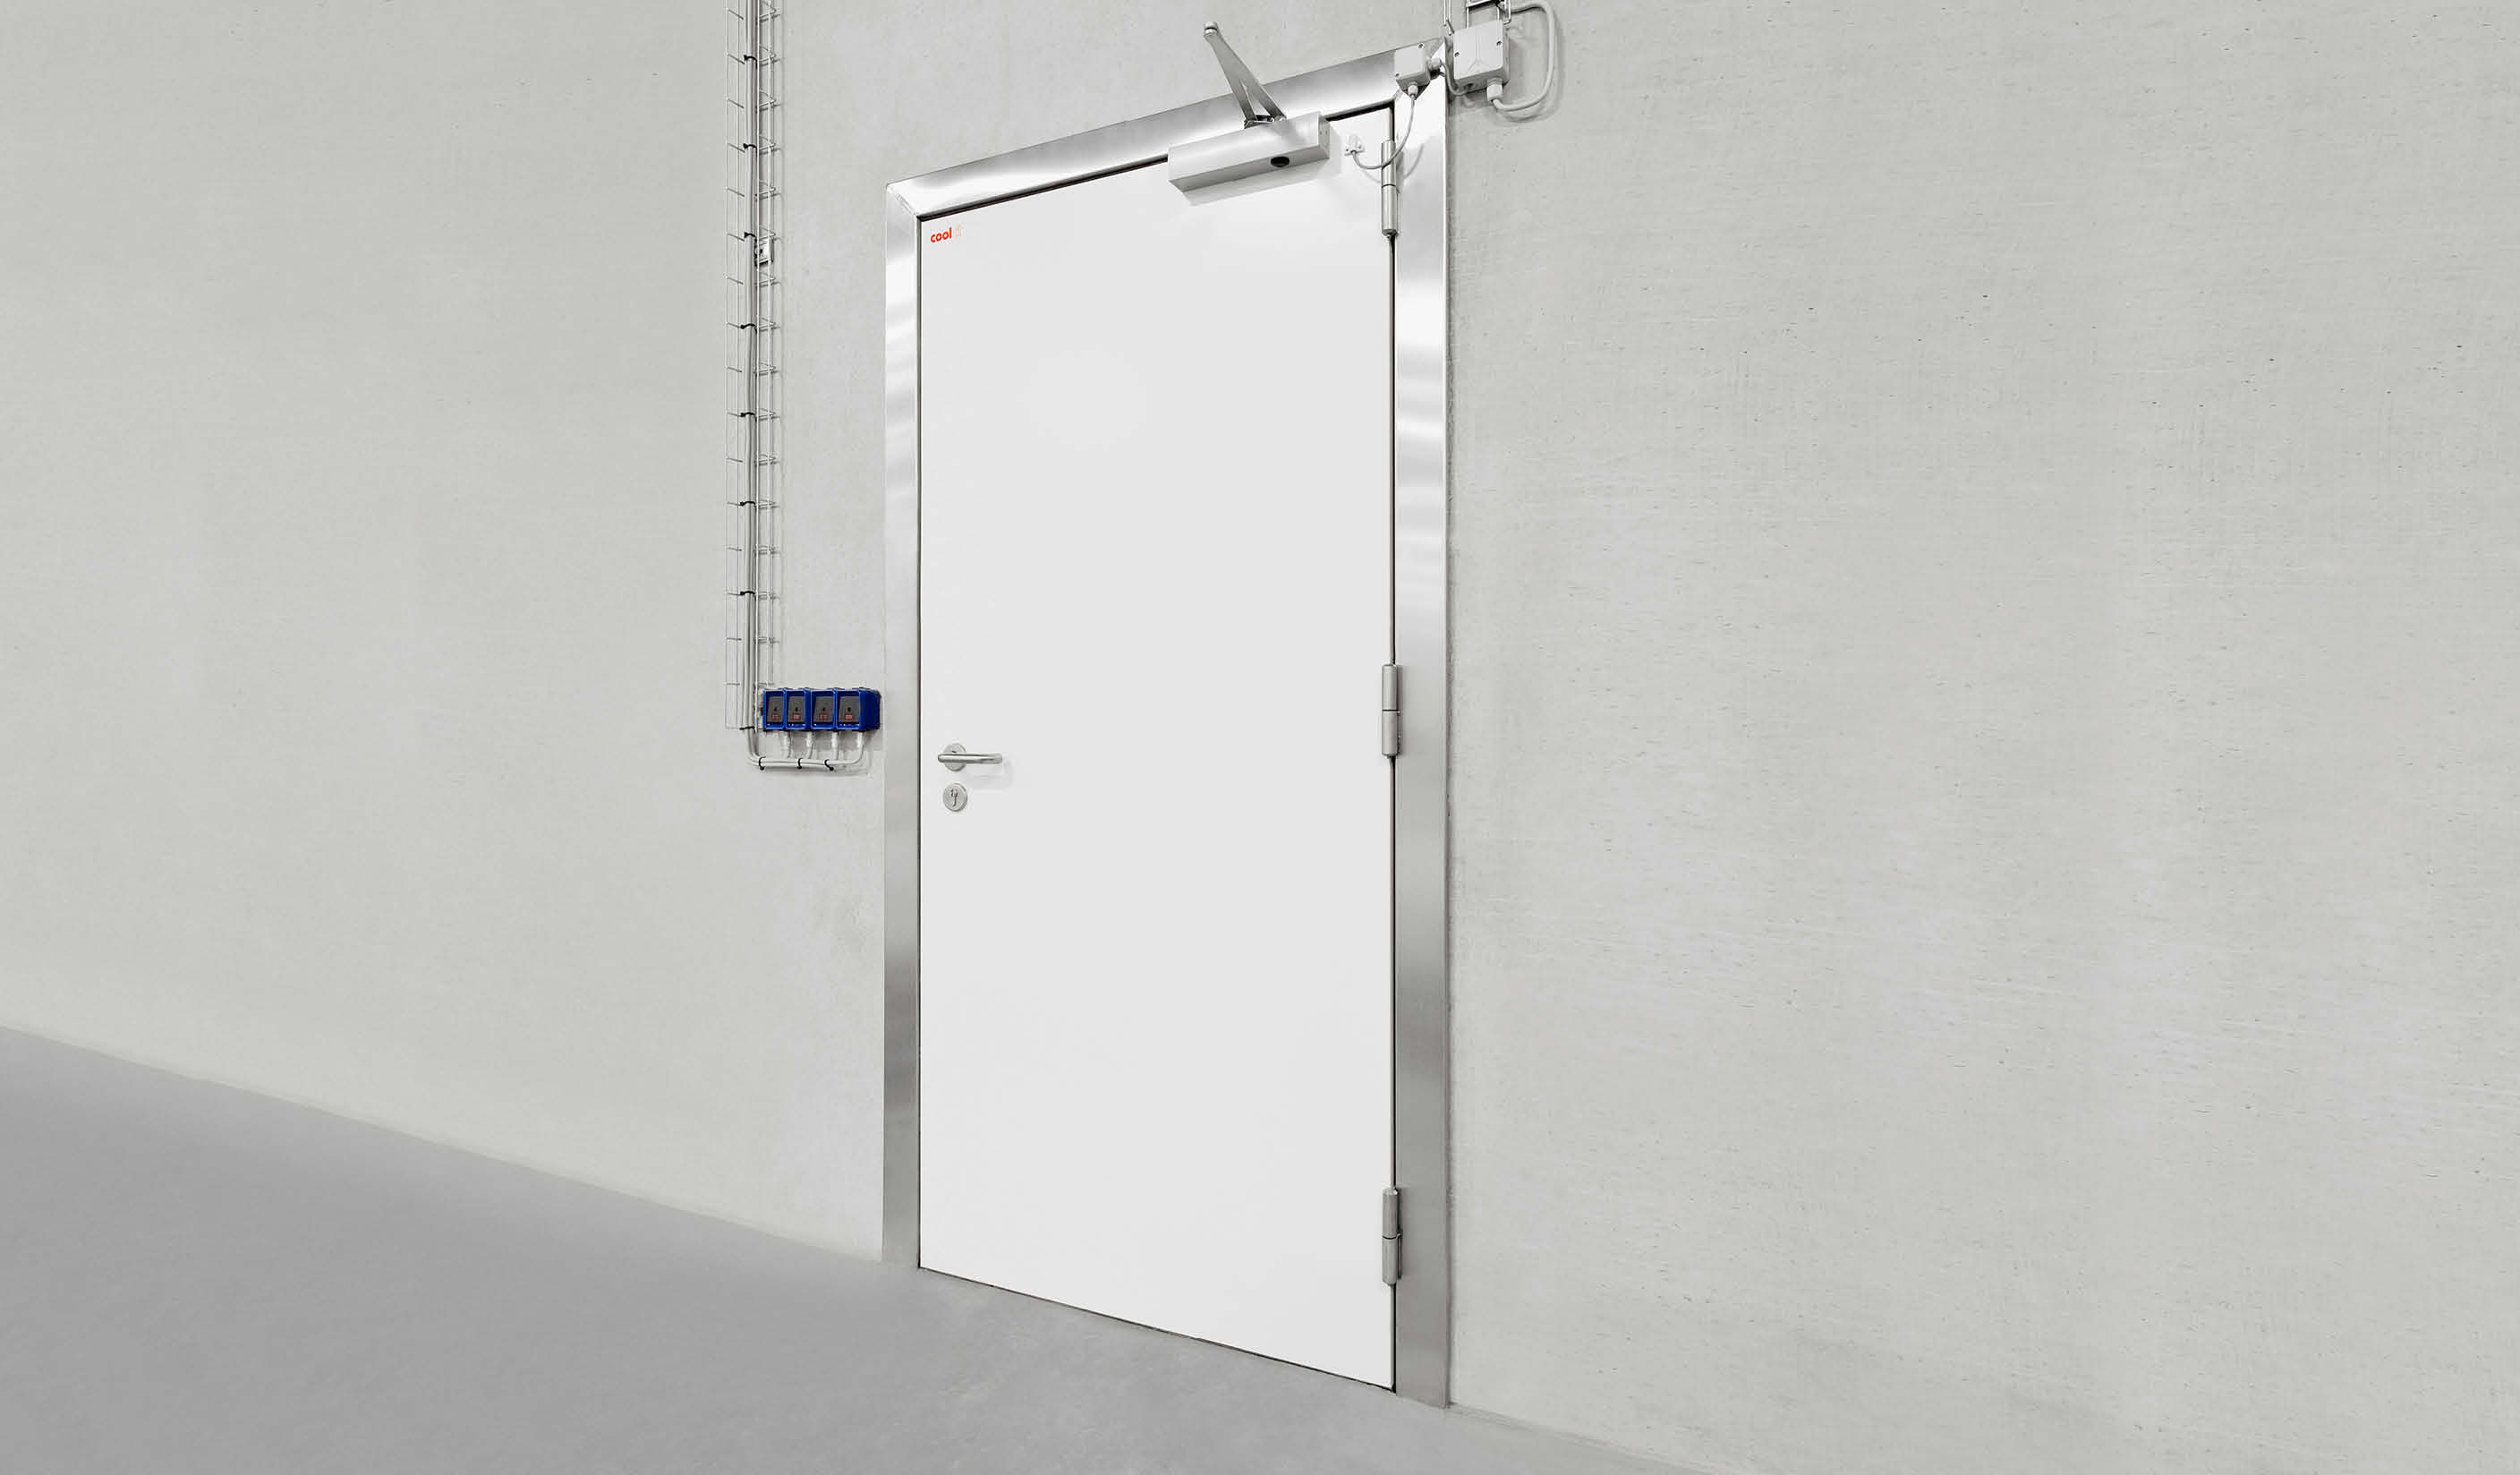 GT-T30 Hinged fire door for freezers